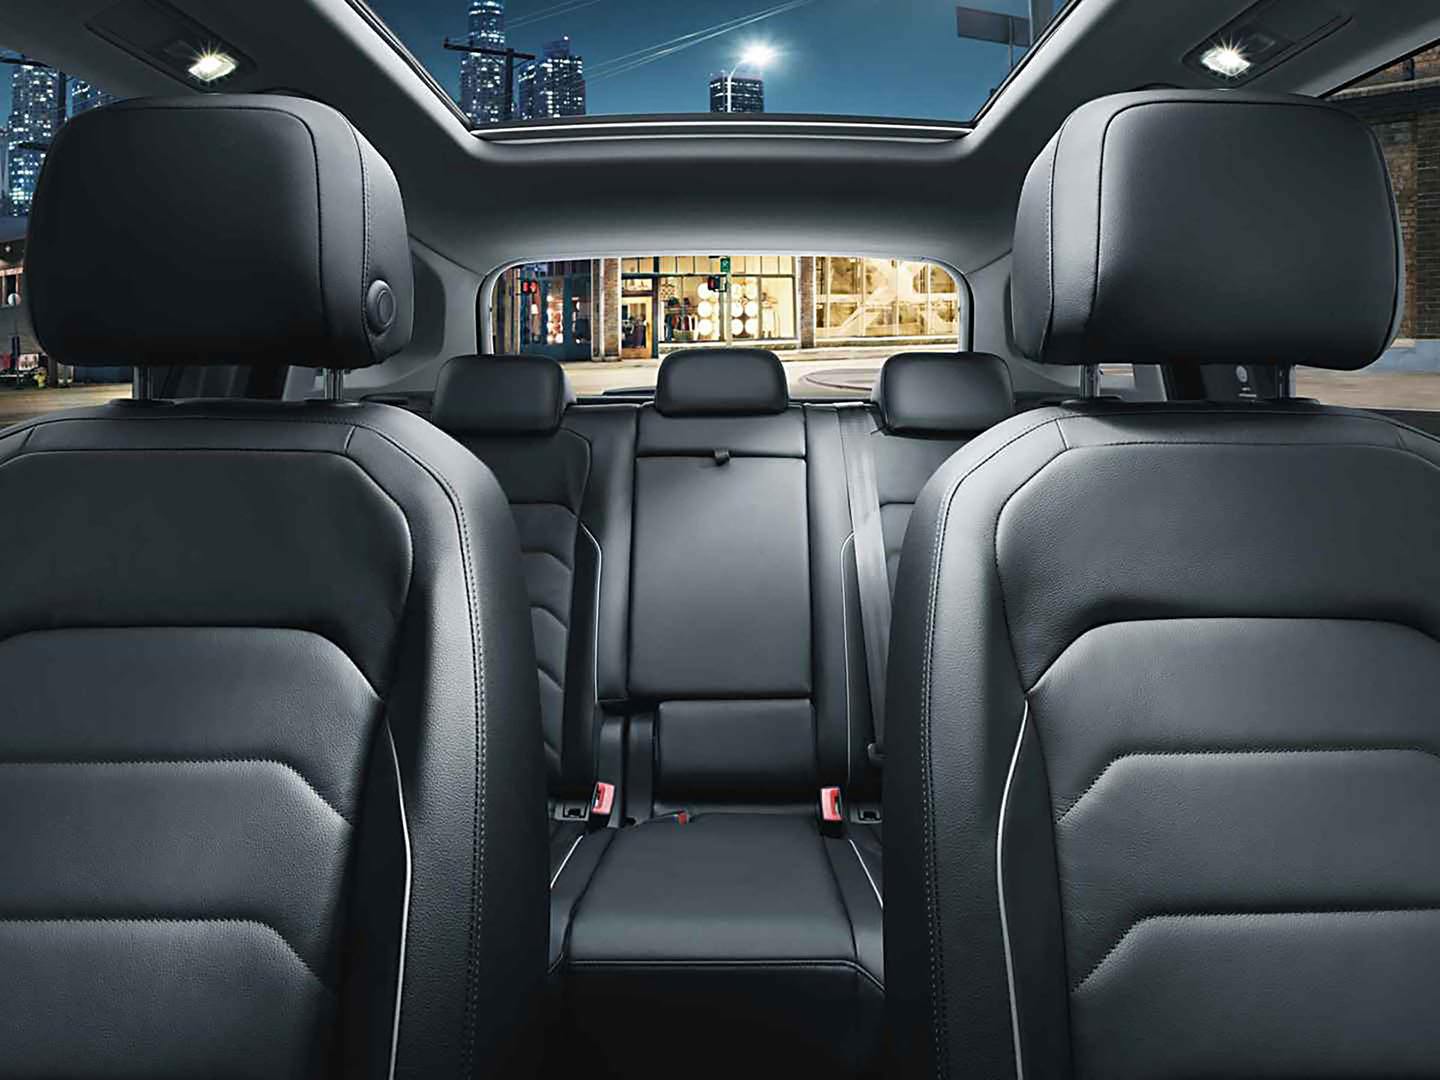 Tiguan Allspace Let the <strong>light in</strong>